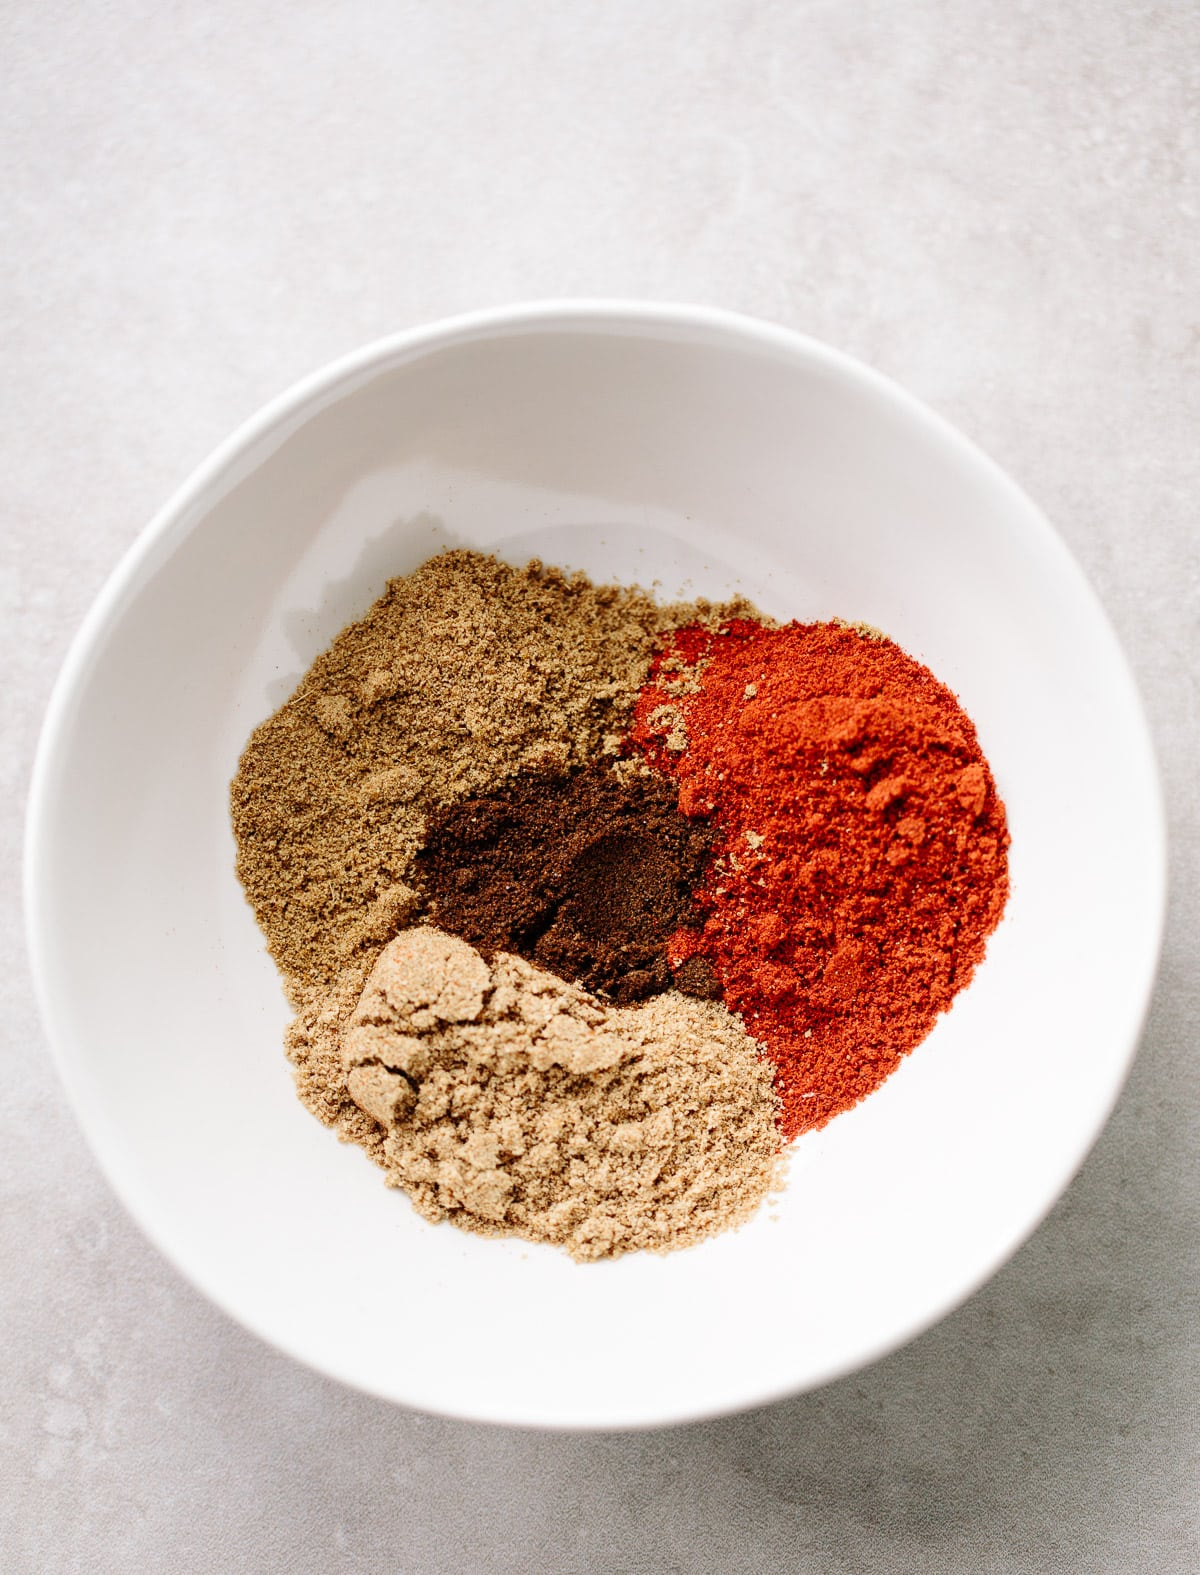 Homemade spice blend for Sweet Potato and Black Bean Chili